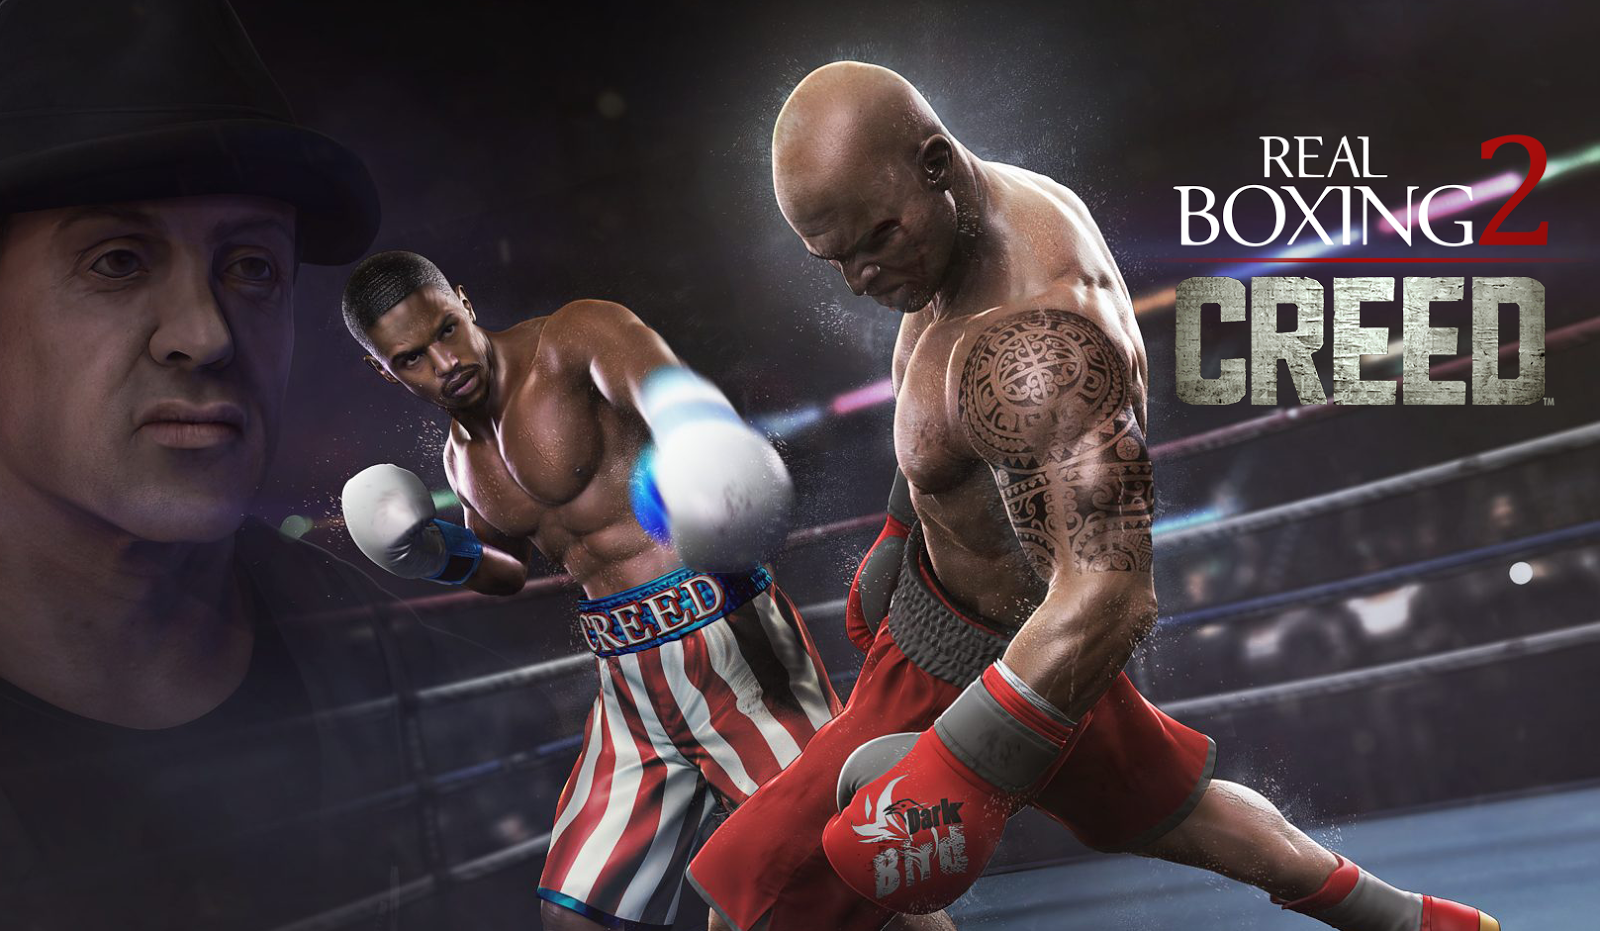 AndroidGames911: Real Boxing 2 CREED v1.1.2 MOD